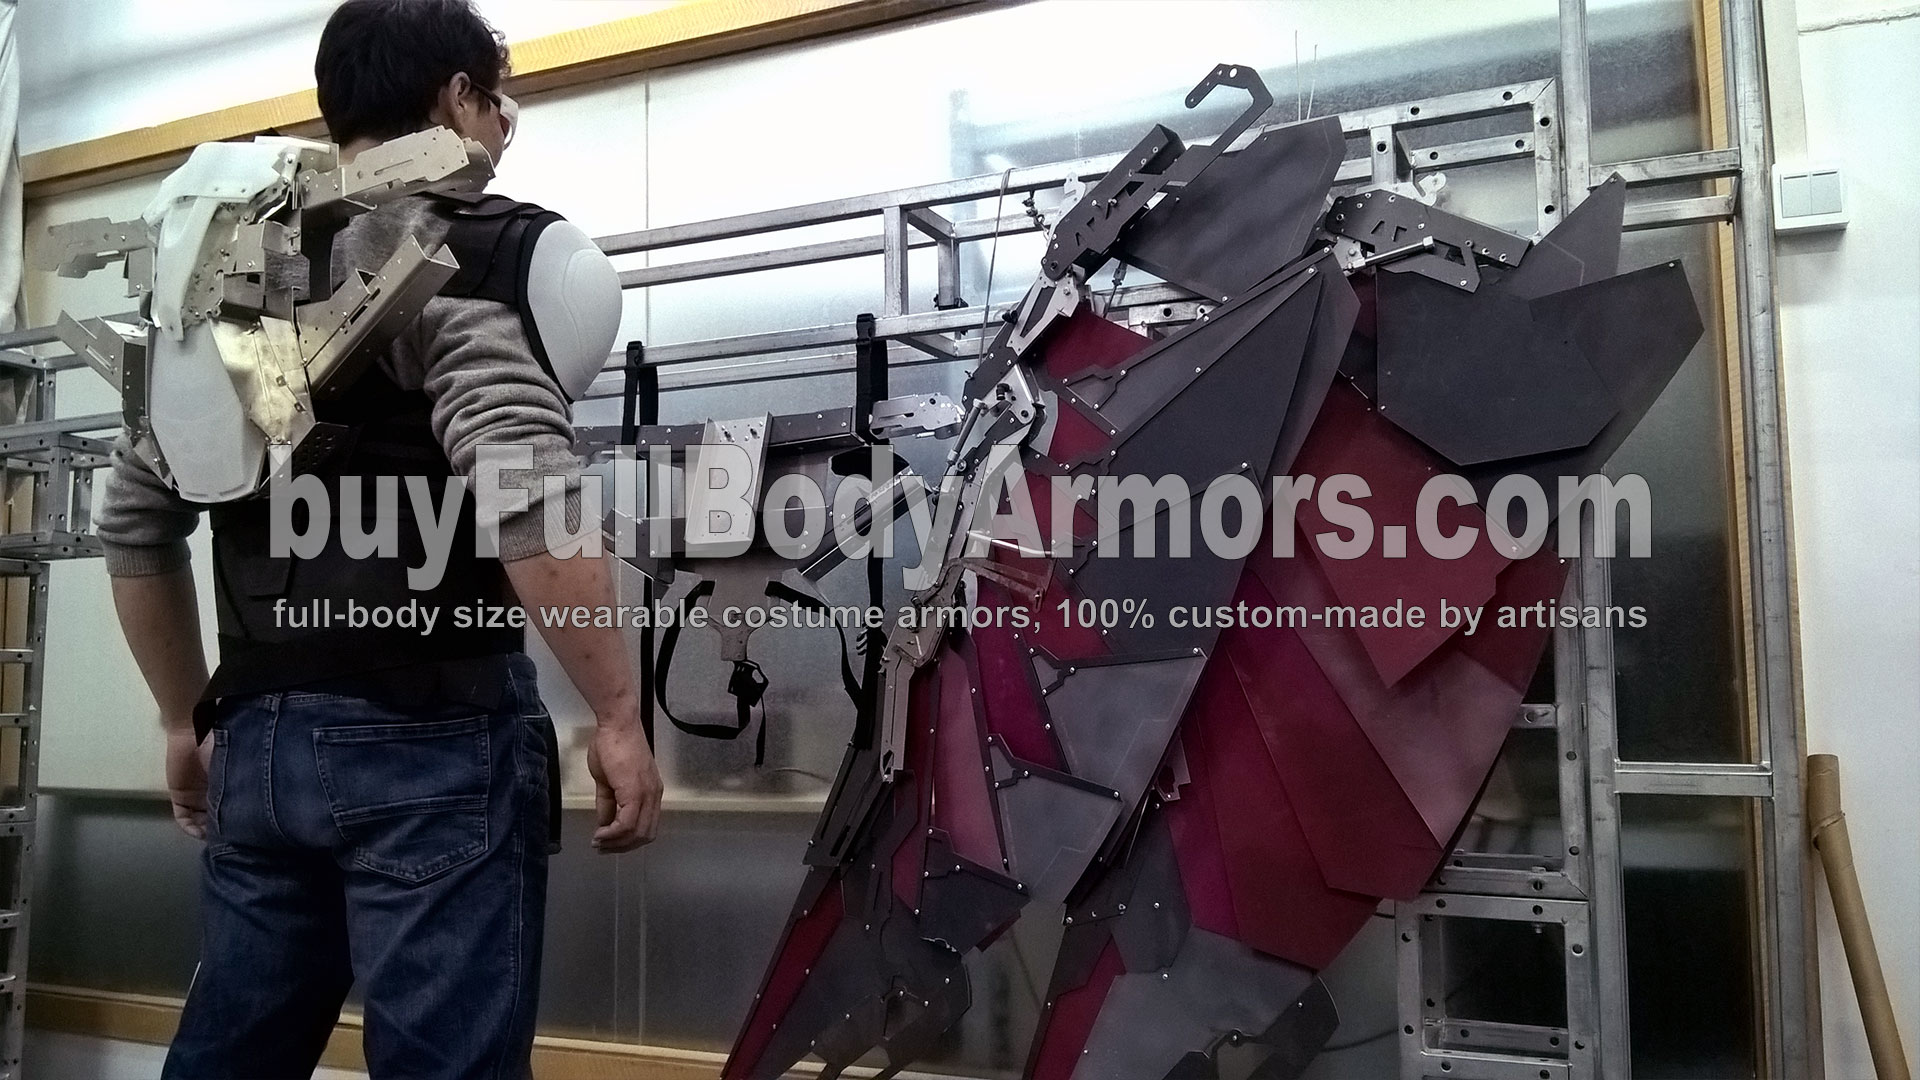 The Avengers 2 Wearable Falcon Suit Prototype - wings, chest armor, back flying pack 2